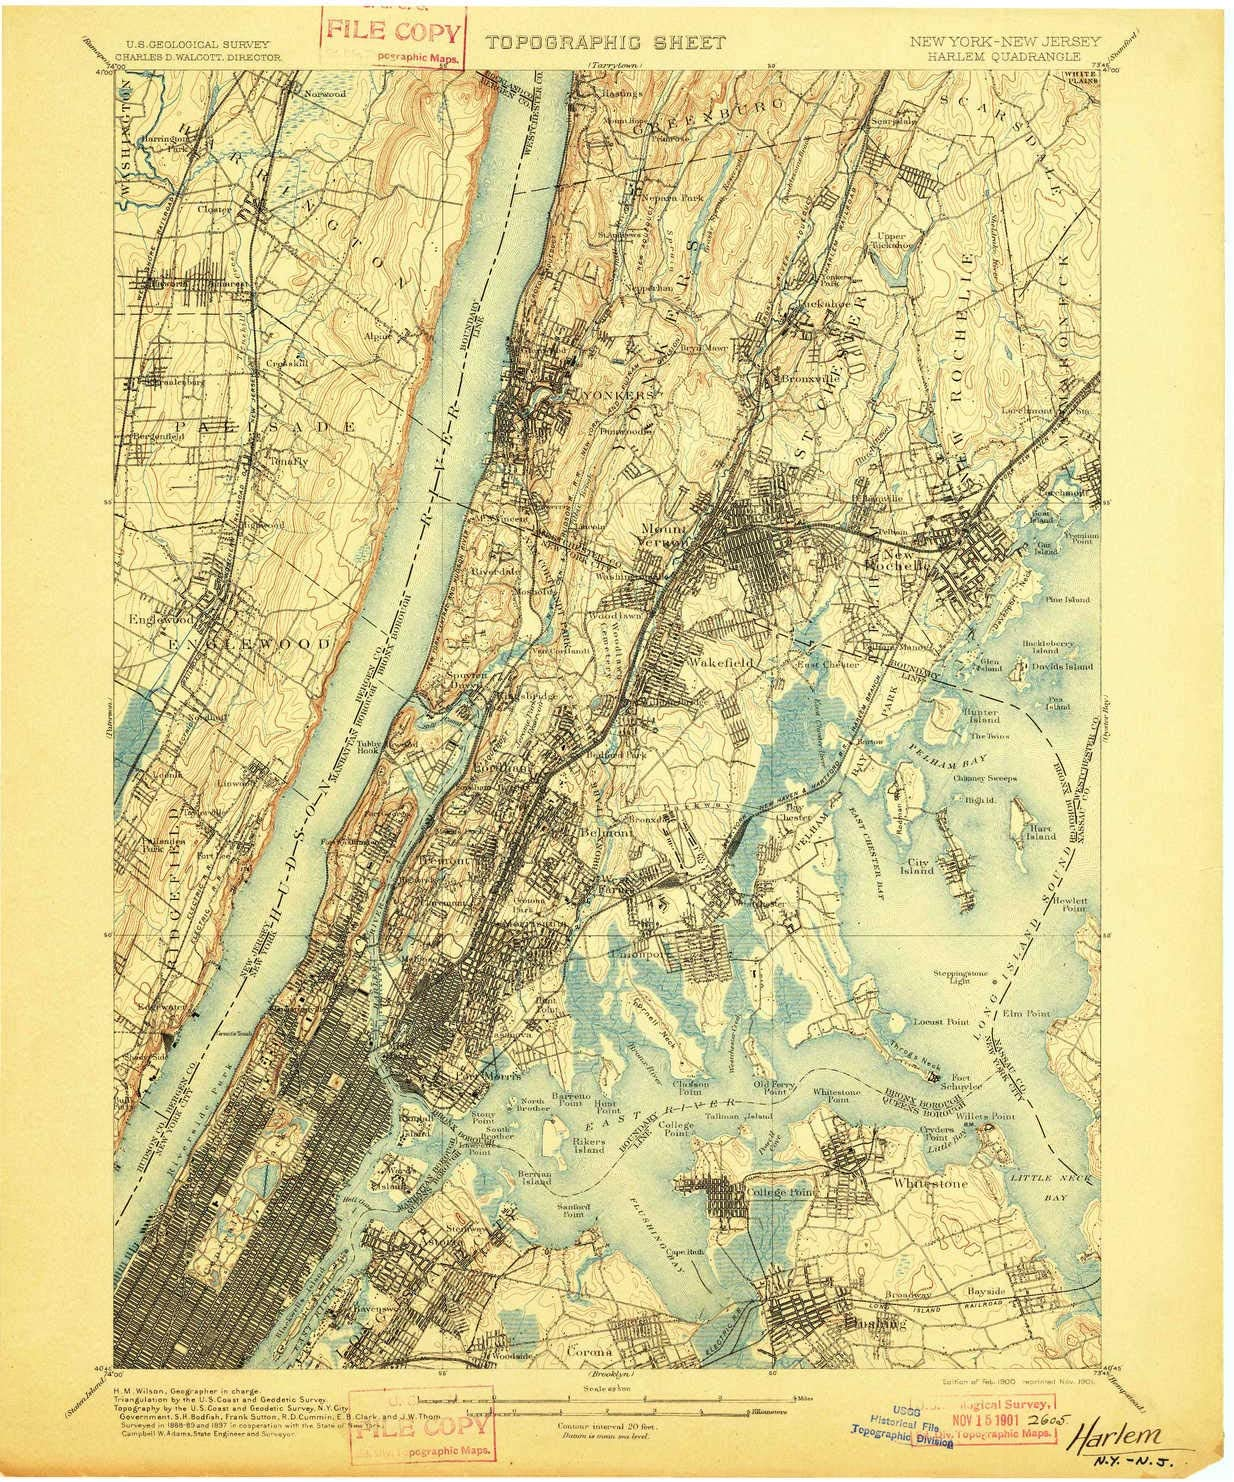 1903 Historical 20.1 x 16.6 in 1:62500 Scale YellowMaps Northport NY topo map 15 X 15 Minute Updated 1924